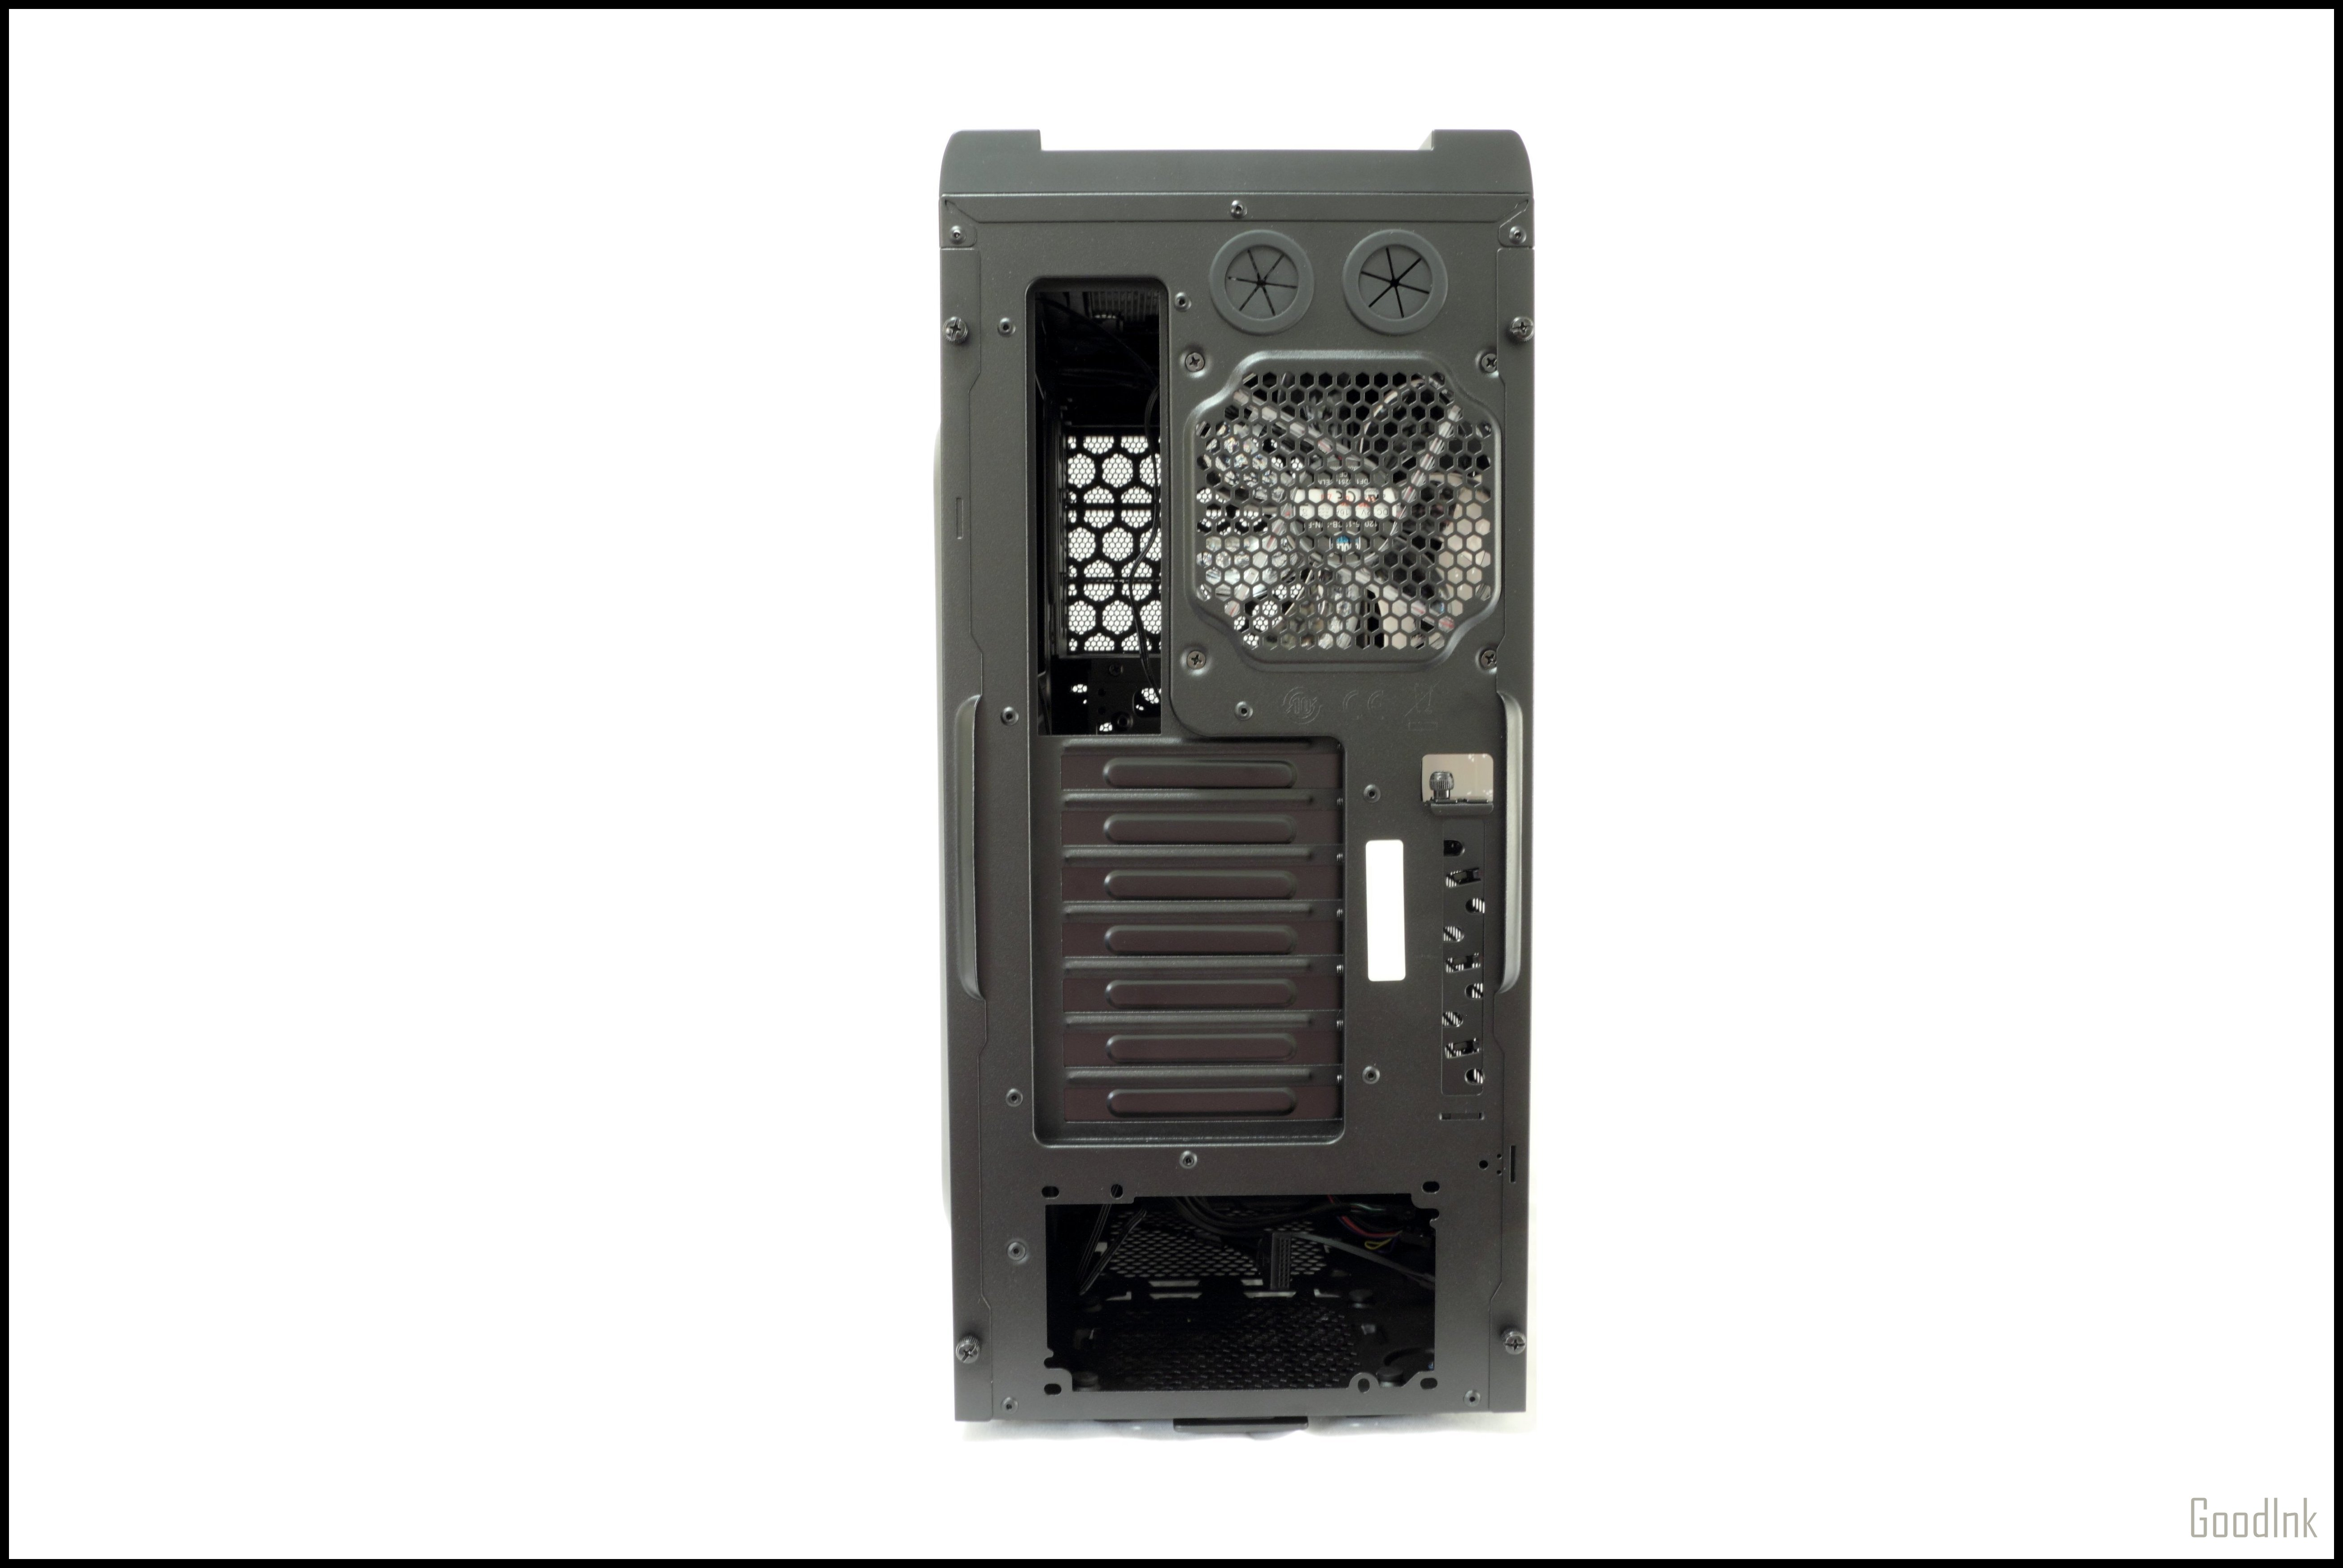 Official] The CoolerMaster Storm Scout, Scout II Club - Overclock ...